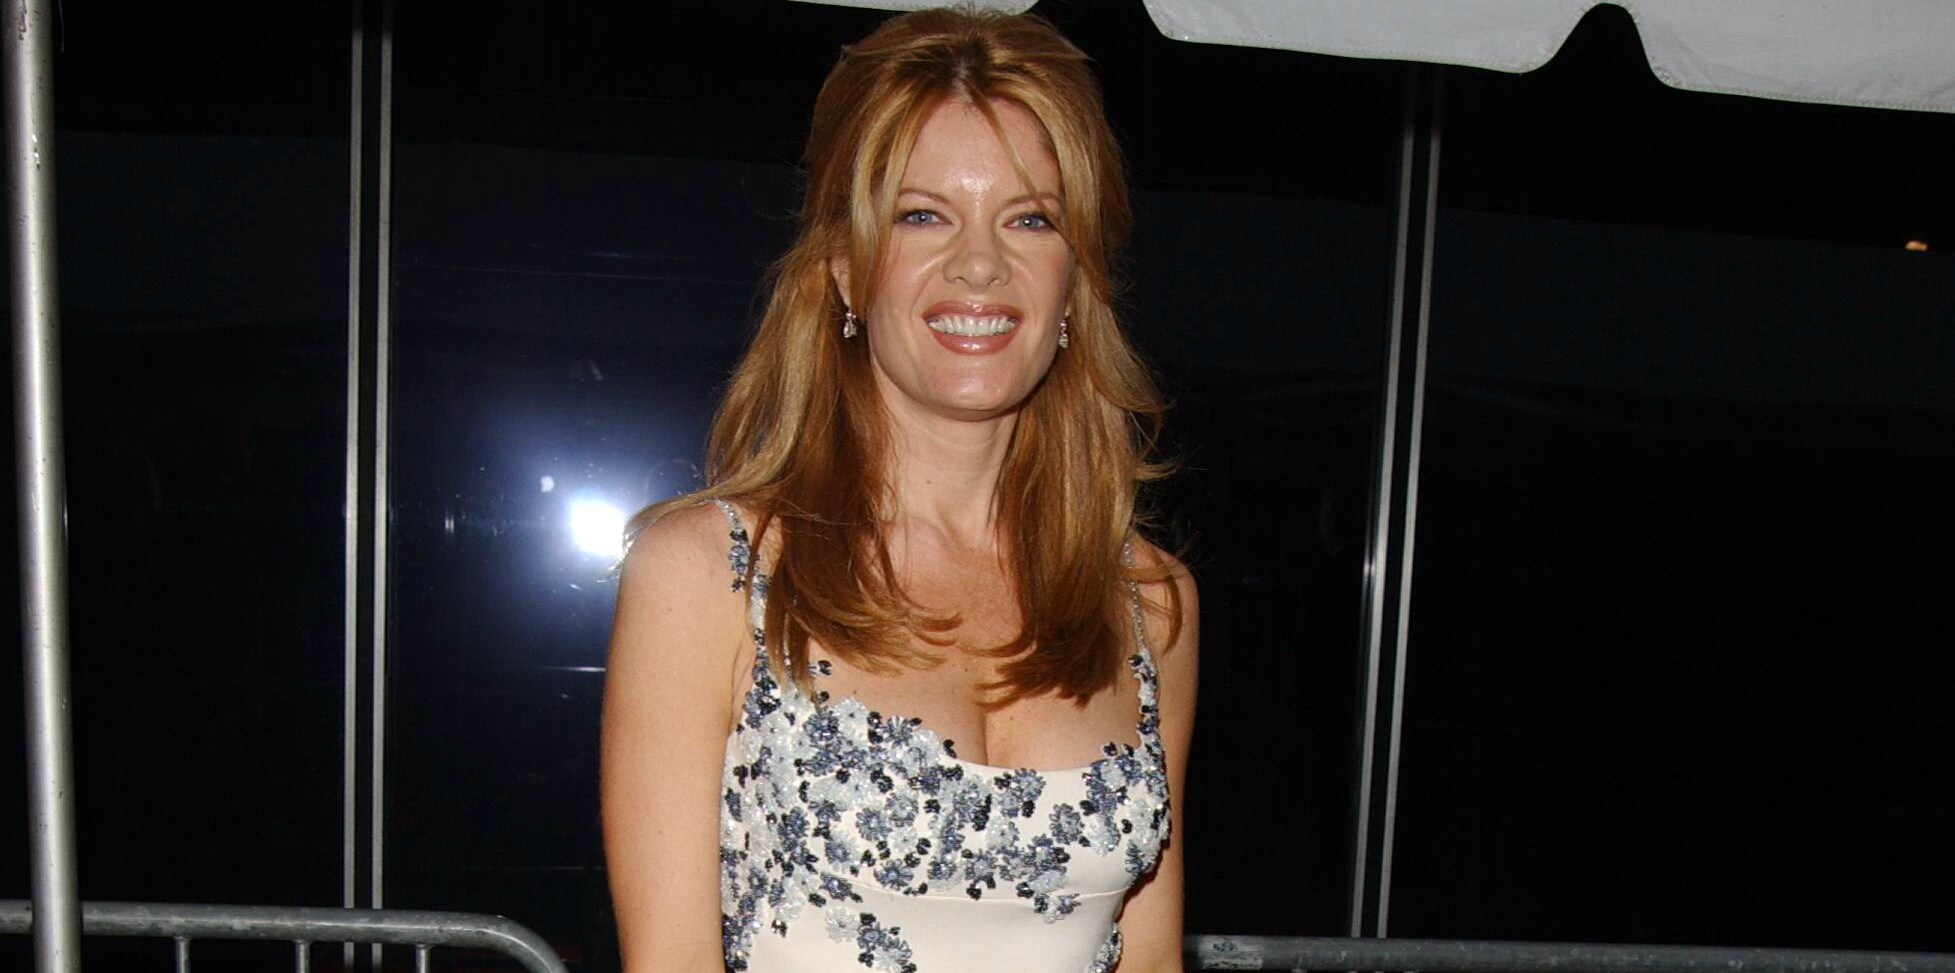 Michelle Stafford main Rewind